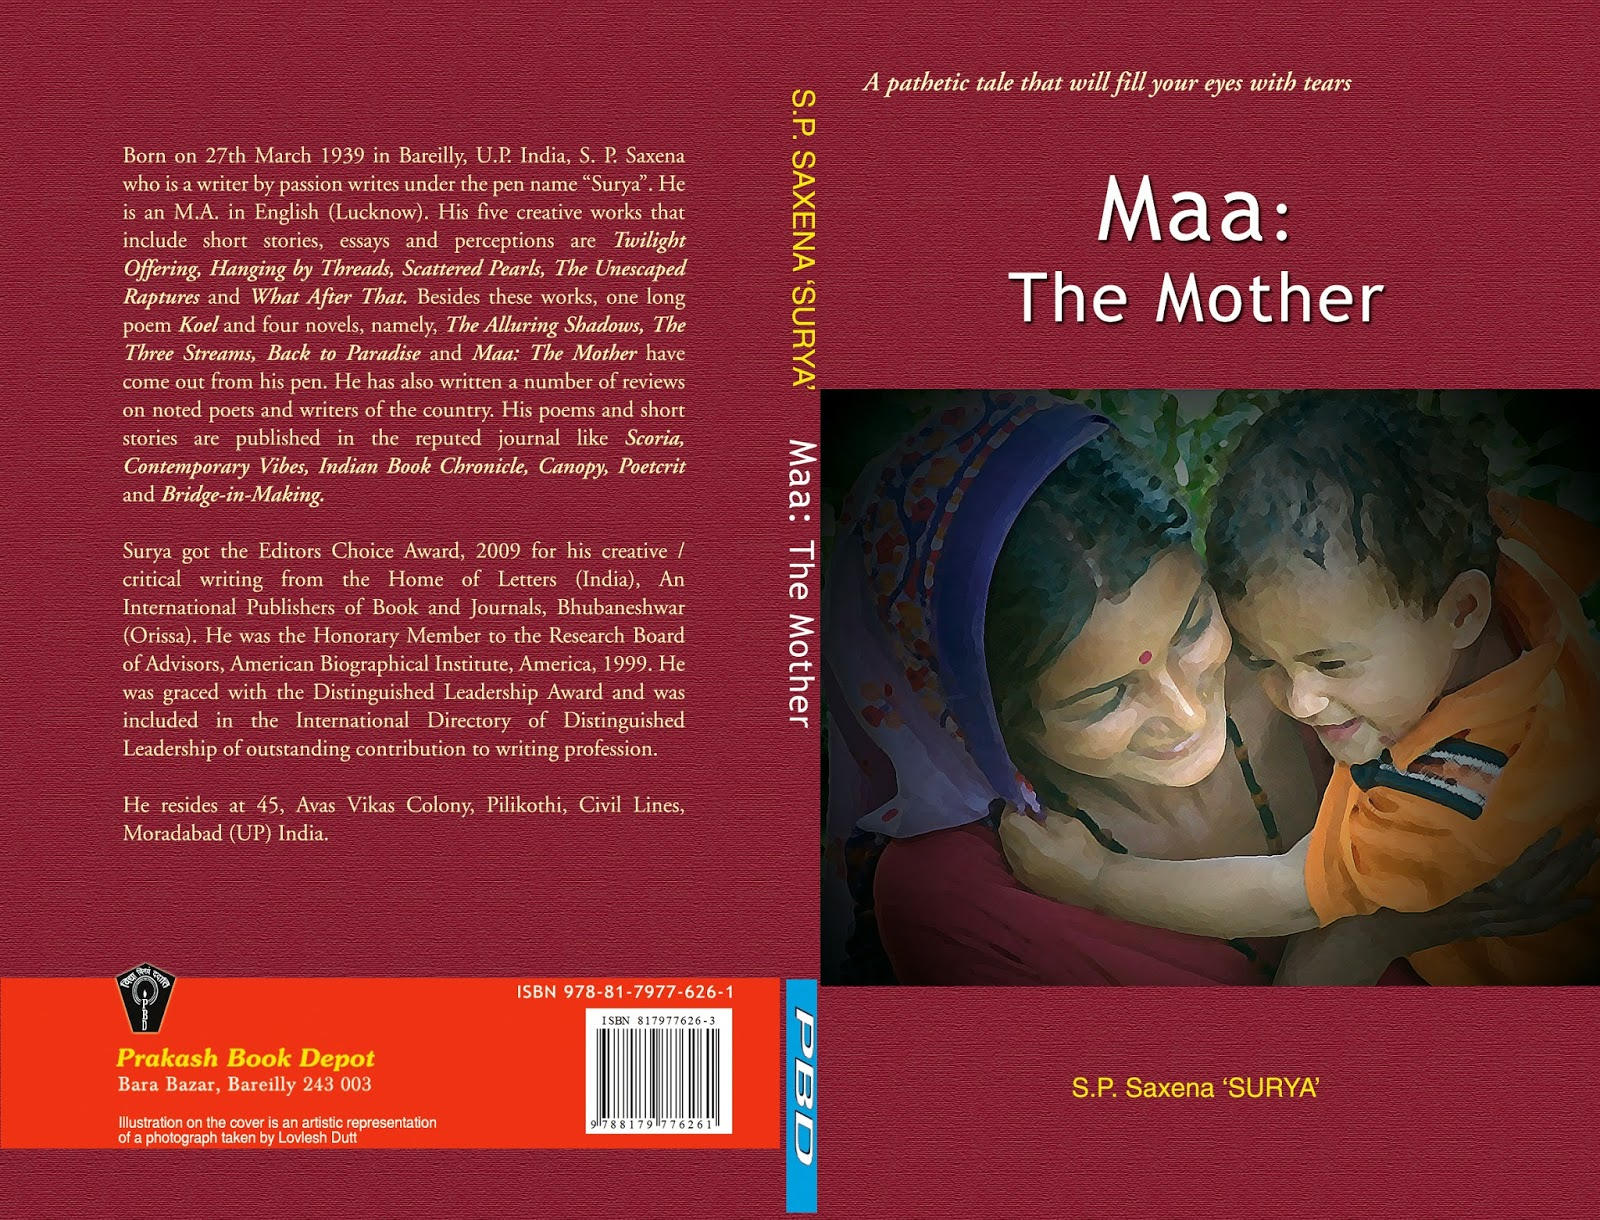 Prakash book depot bareilly views and news maa the mother fandeluxe Images